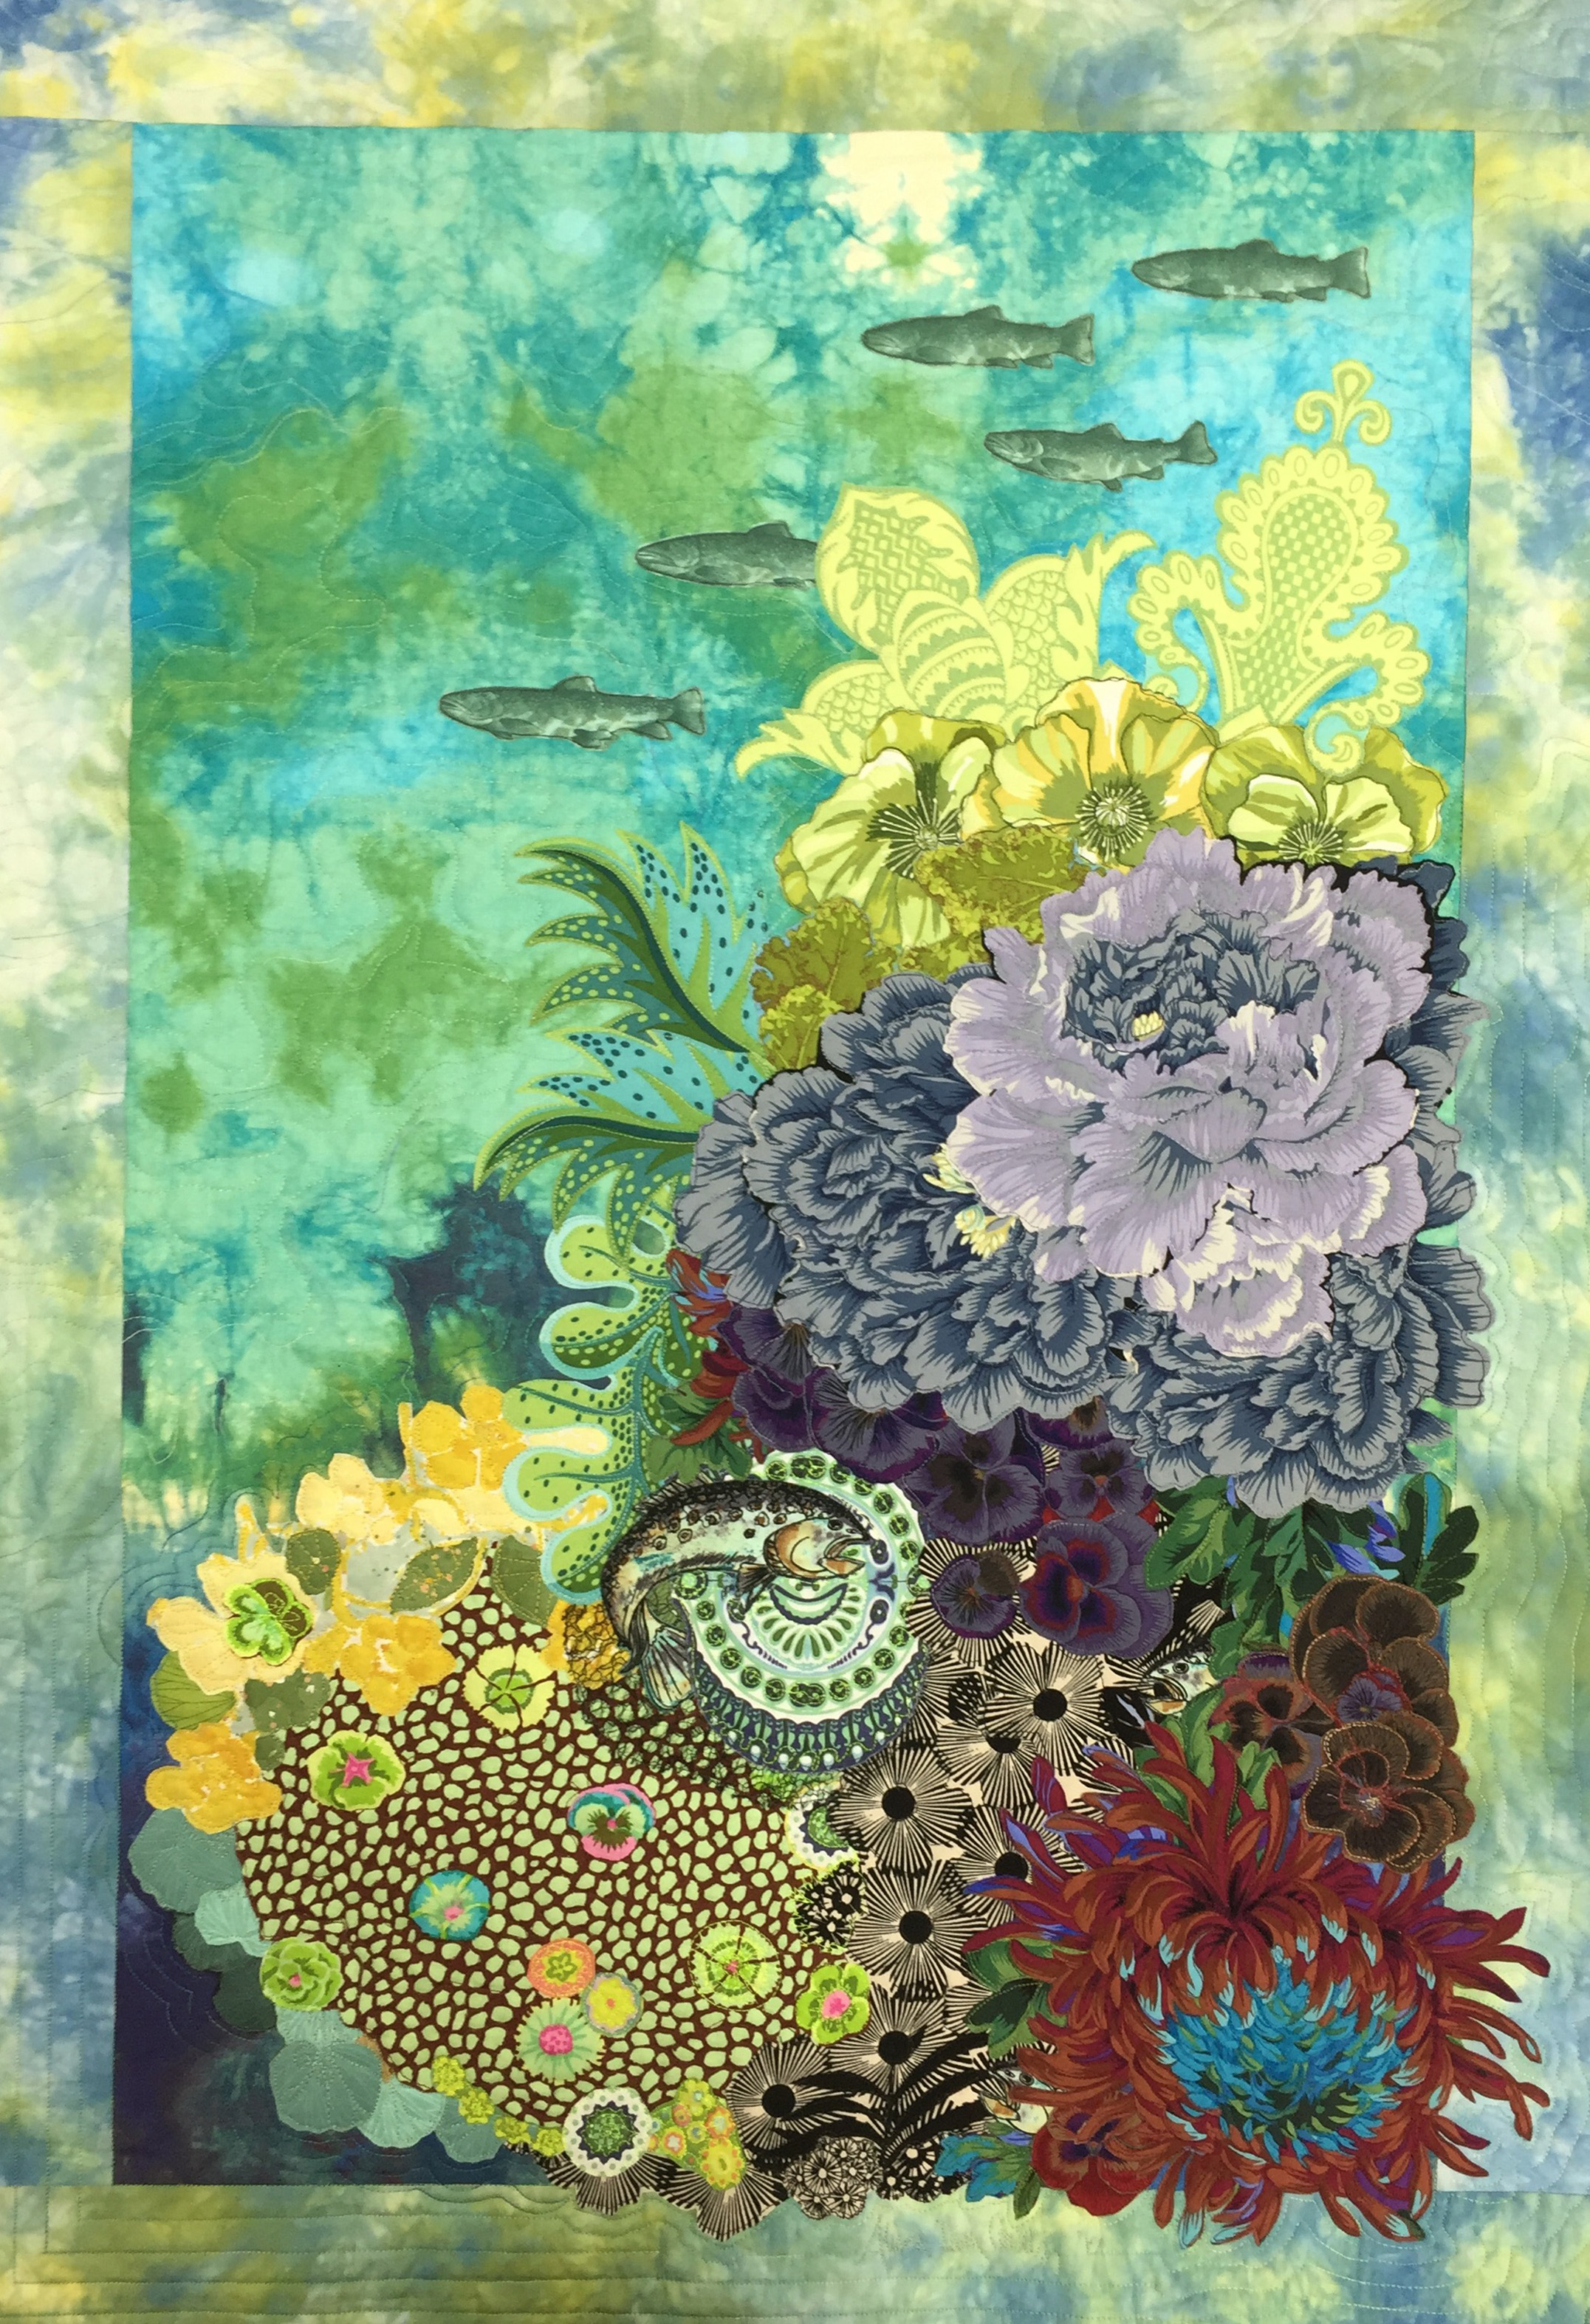 "underwater illusion - 24"" x 36""Private Collection - Kansas, USAInspired by bold floral printed fabrics and underwater experiences I set out to interpret my scuba diving experience underwater. Mixing hand dyed fabrics and commercial motif patterns designed and collaged an ideal underwater garden."